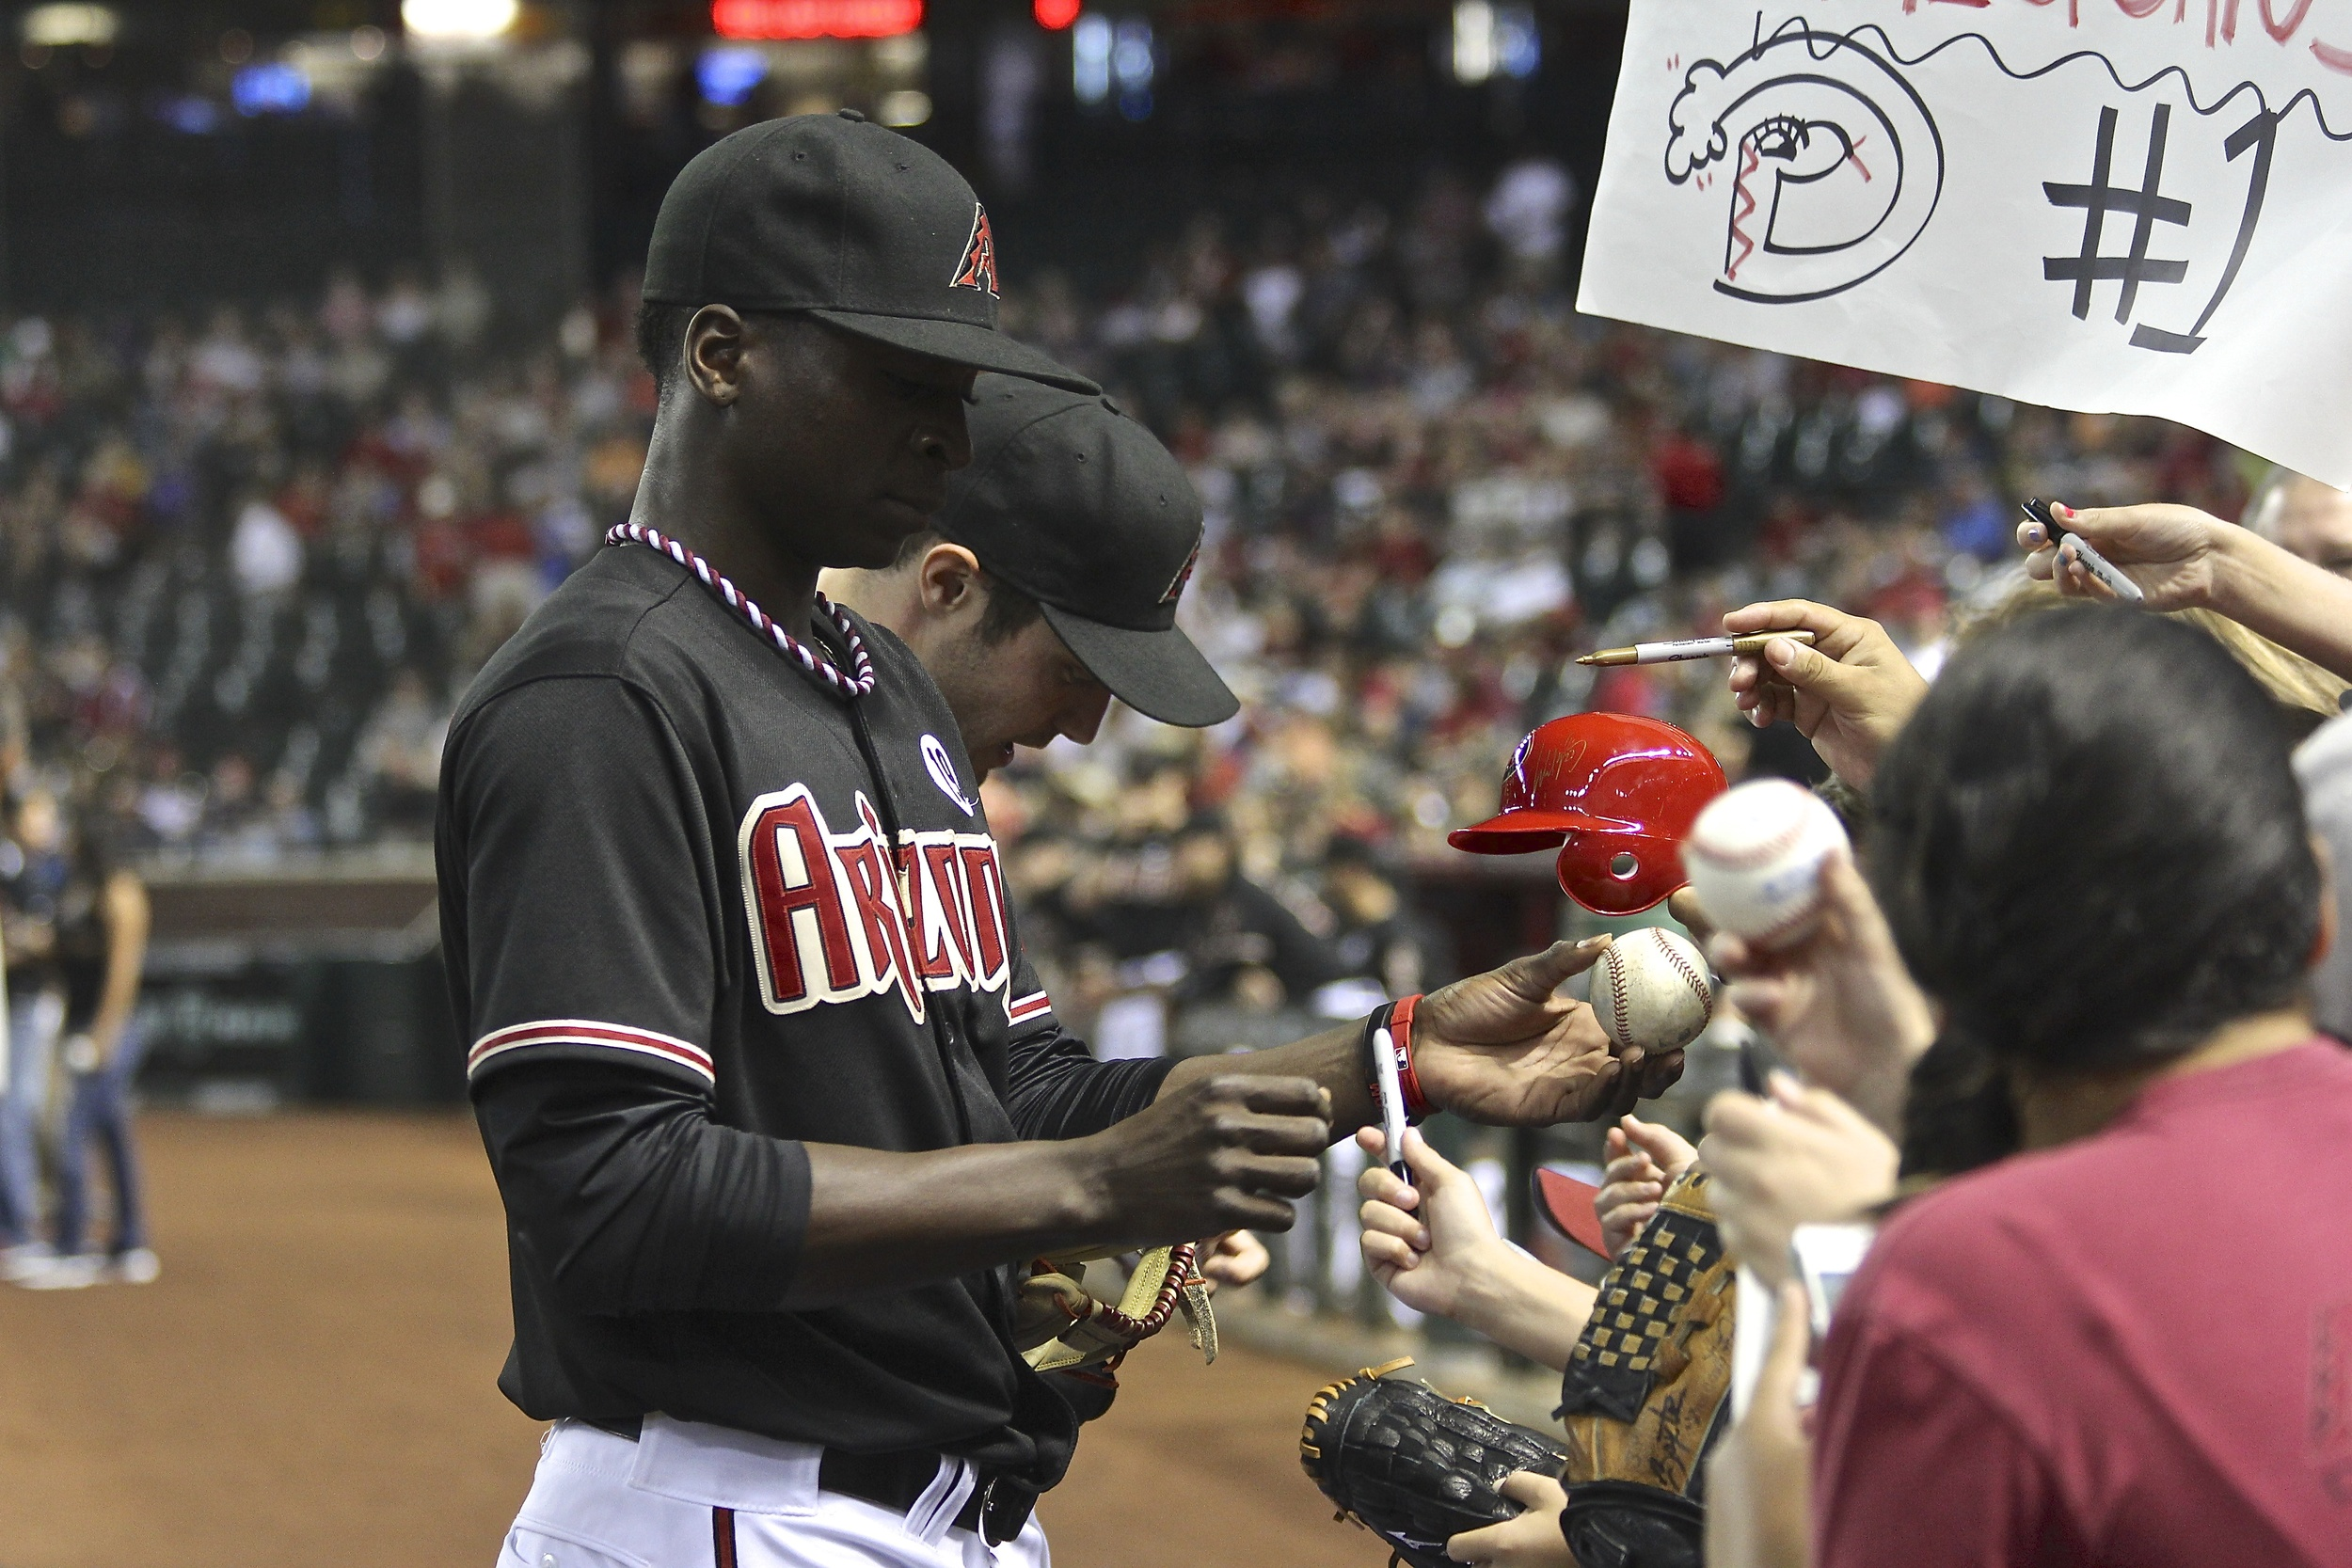 Didi Gregorious signs for some kids